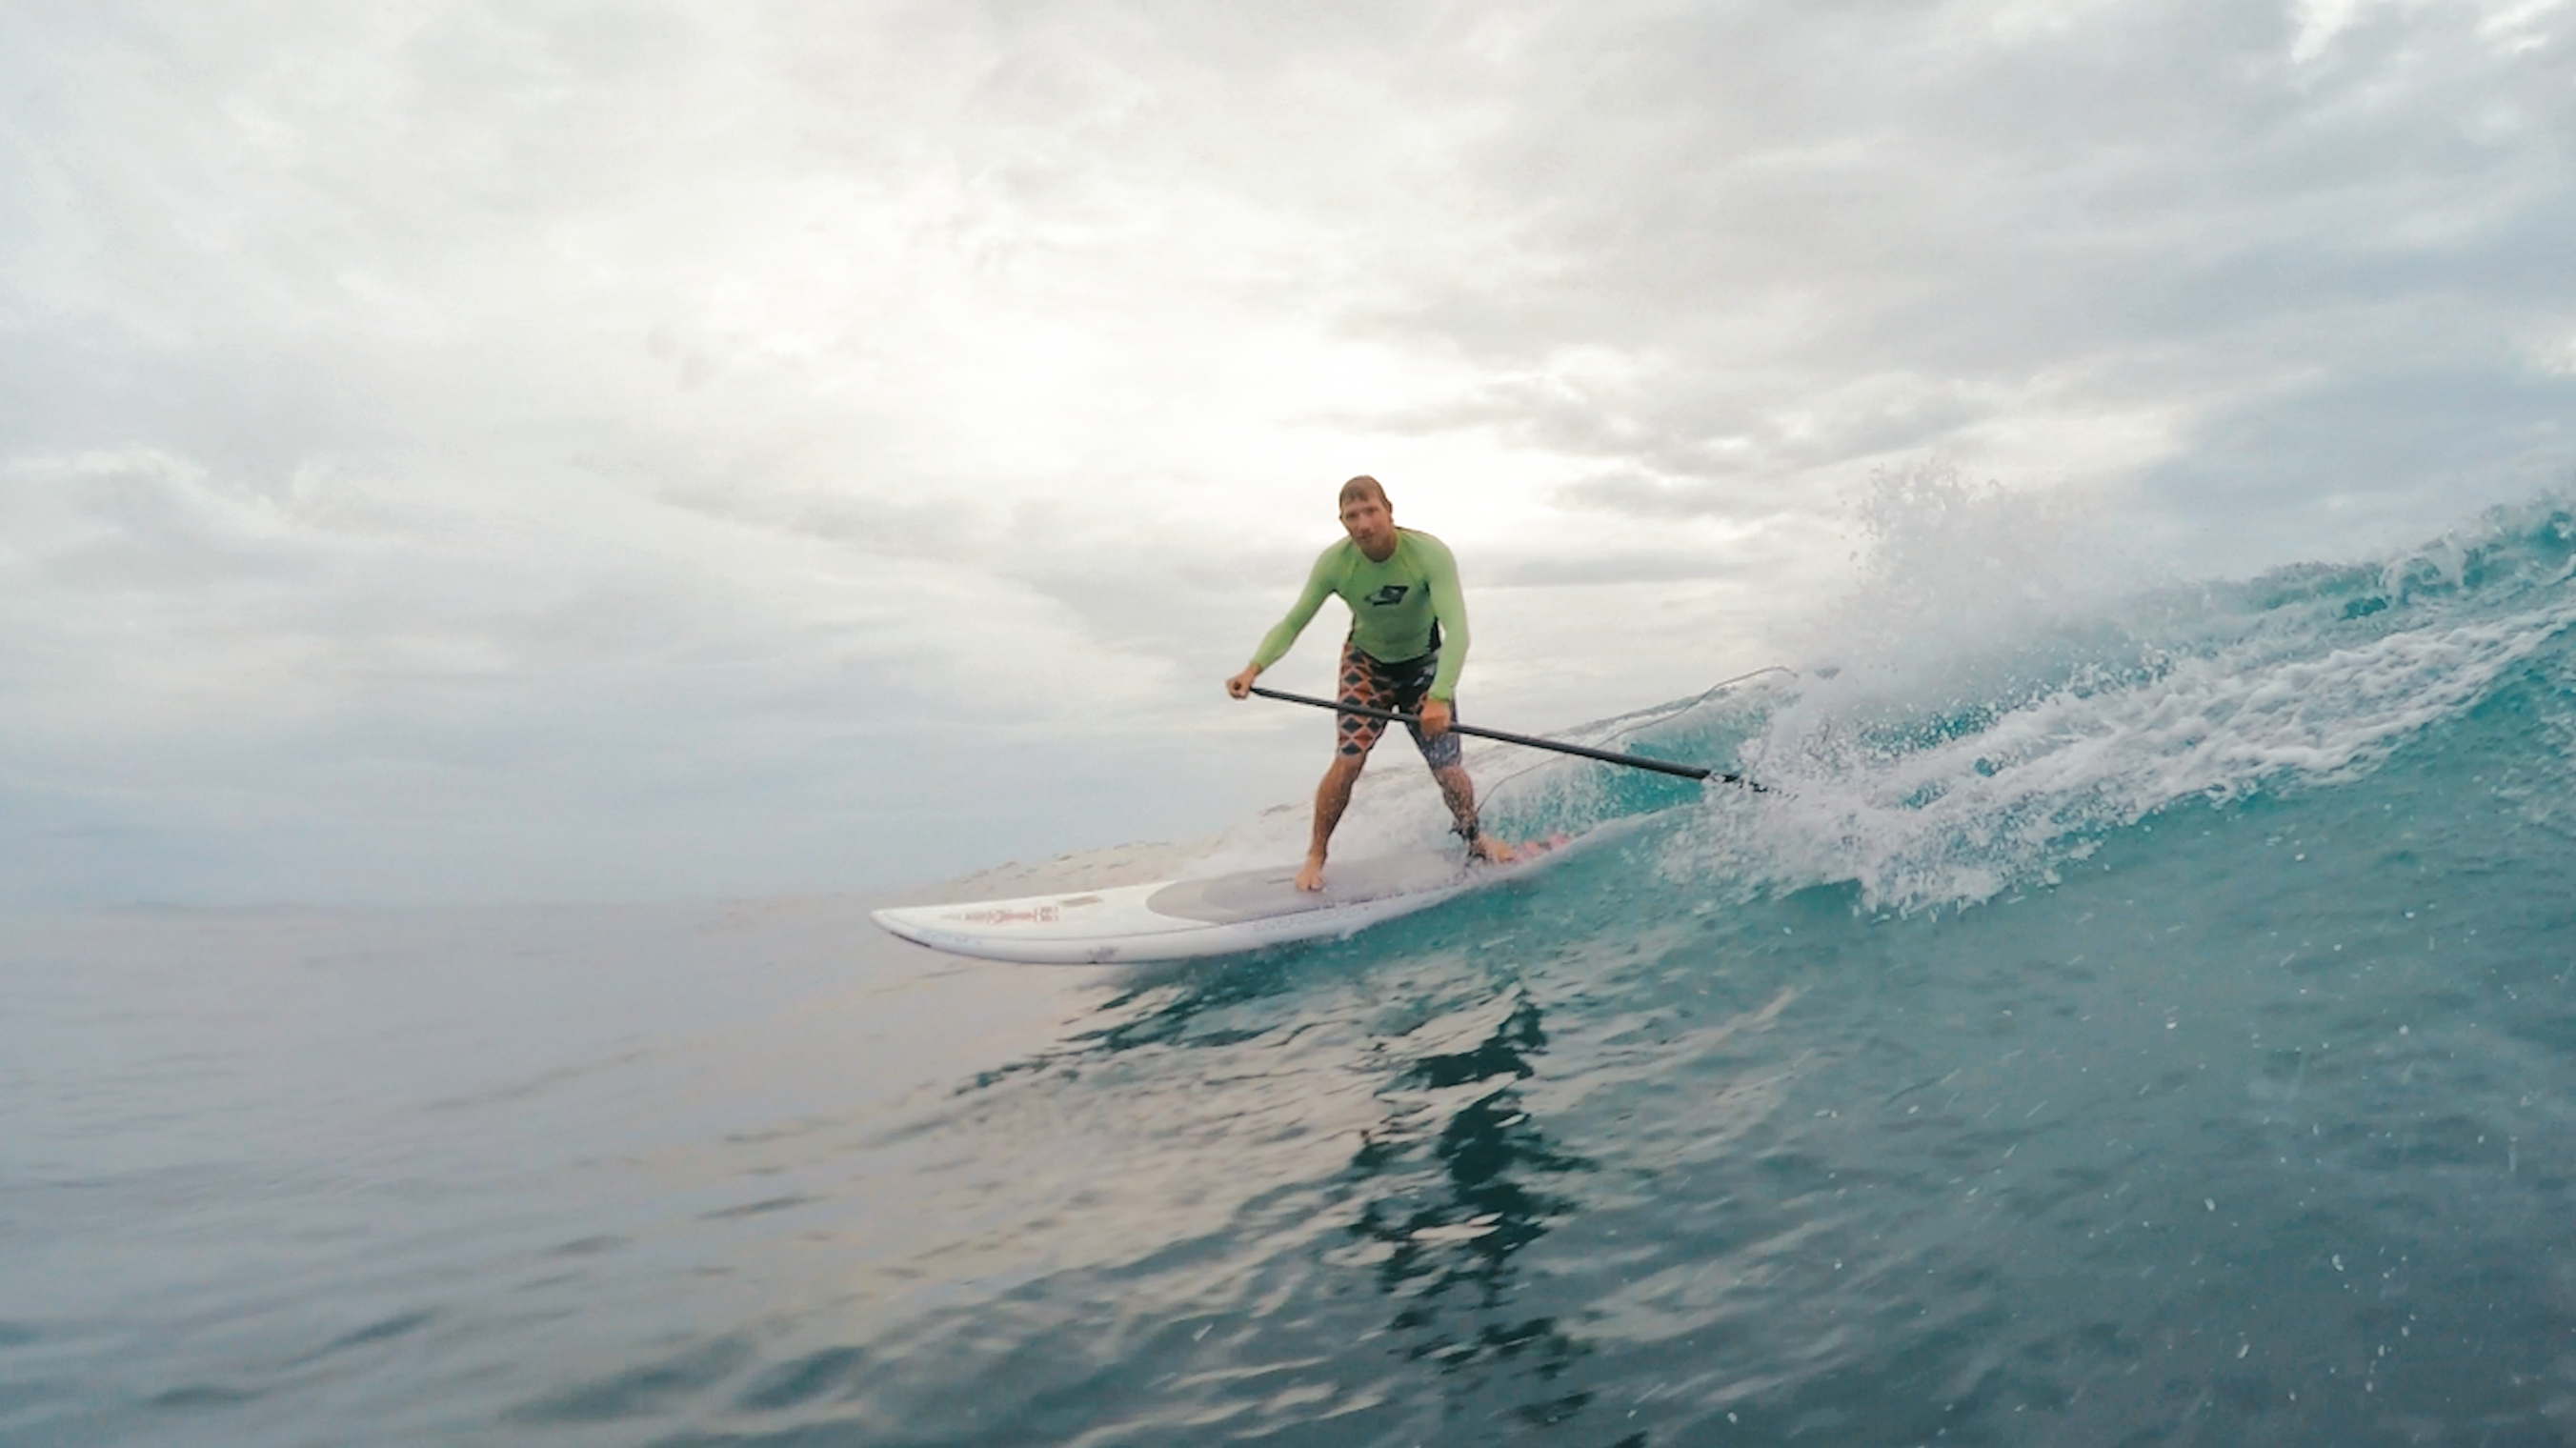 Sup Surf Rincon Paddle Boards Rentals Surf Lessons